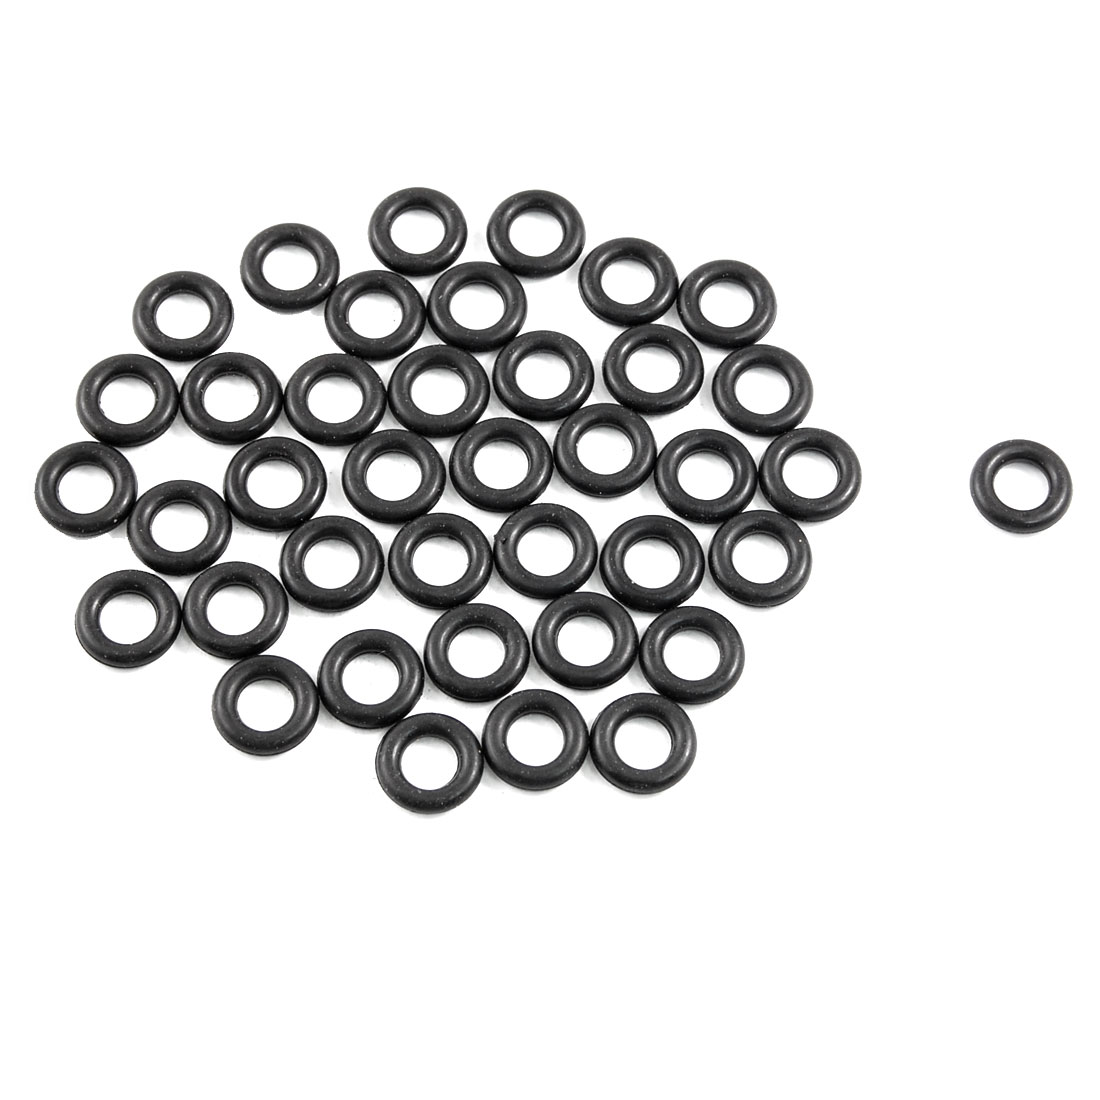 50 Pcs 7mm x 13mm x 3mm Black Nitrile Rubber Sealing O Ring Gasket Washer